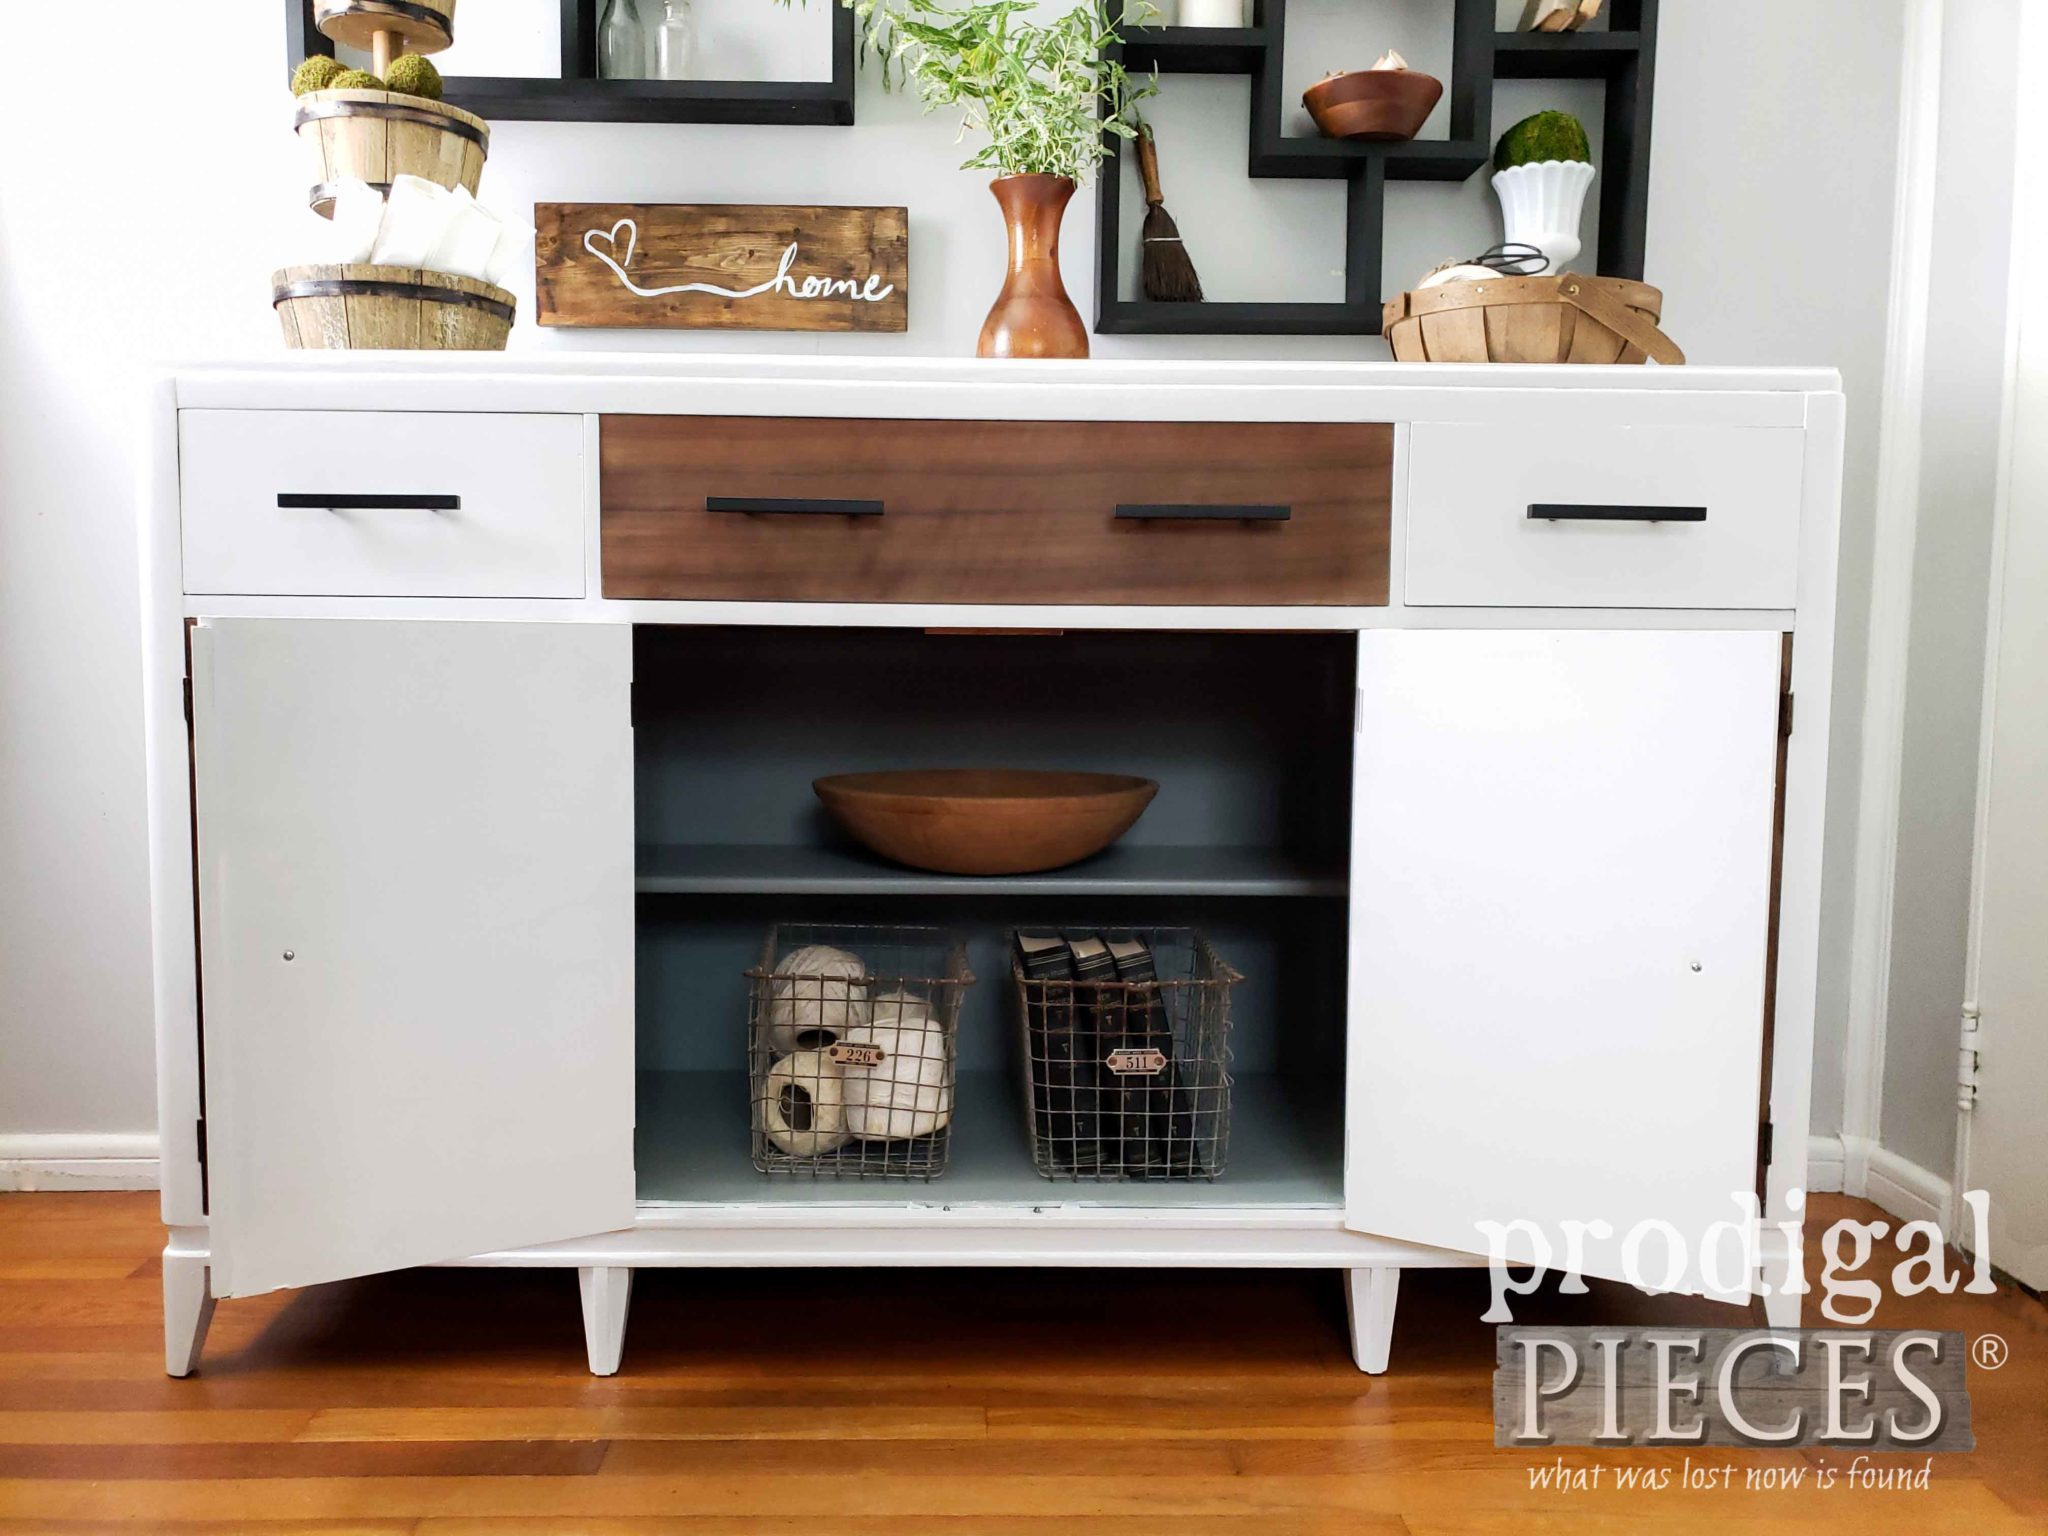 Painted Buffet Interior for a pop of color by Larissa of Prodigal Pieces | prodigalpieces.com